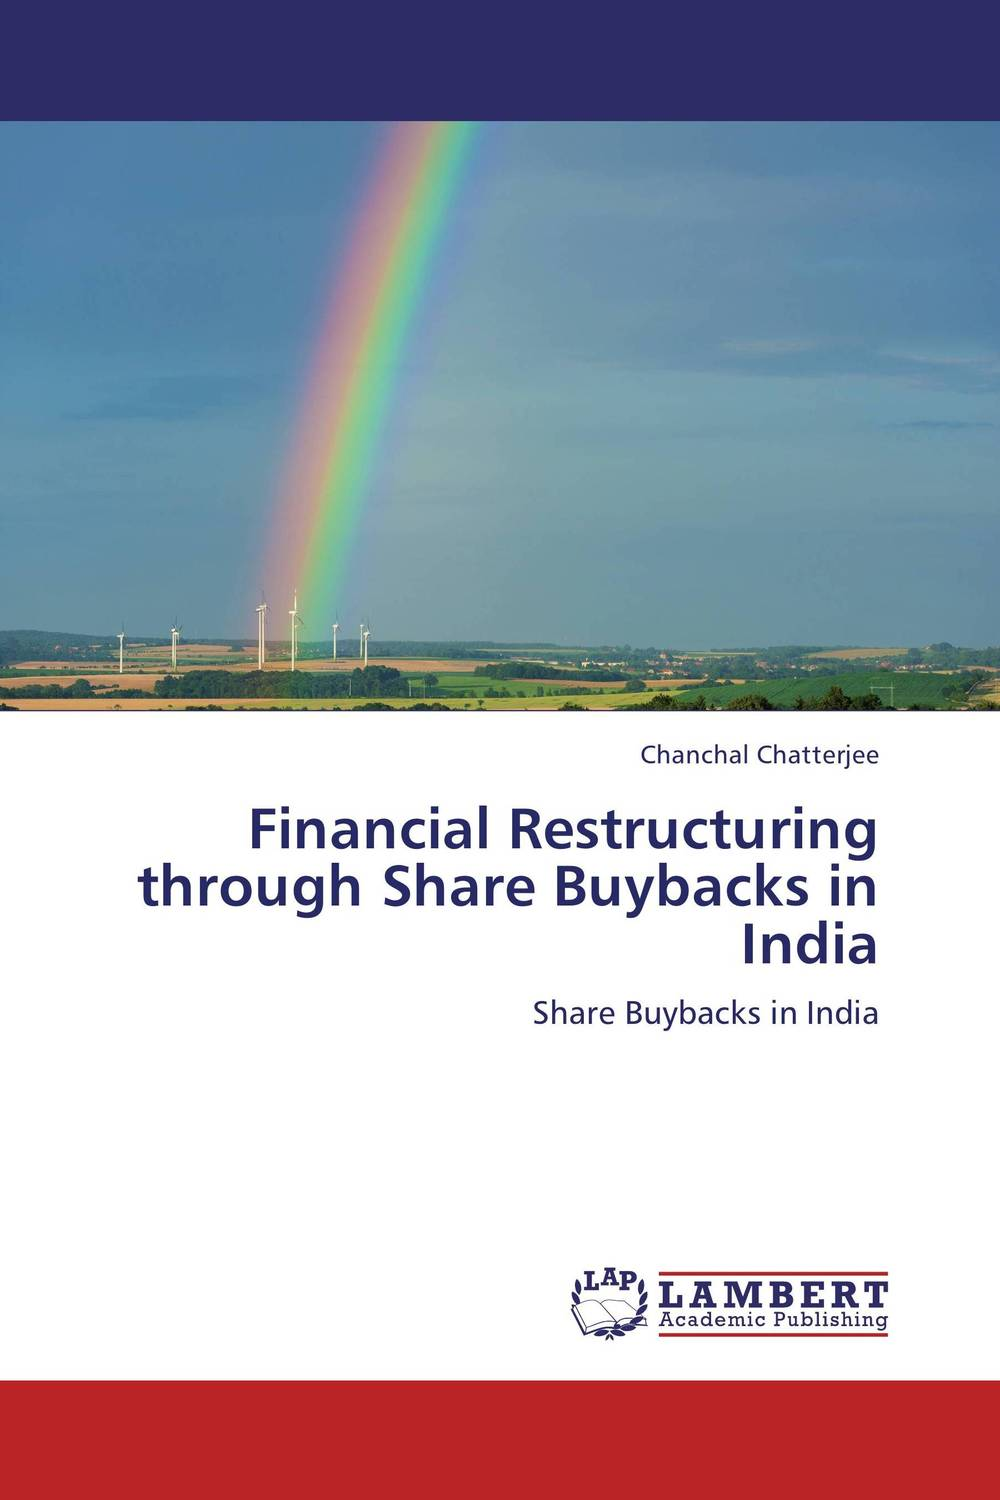 Financial Restructuring through Share Buybacks in India corporate governance and enterprise restructuring in southeast europe